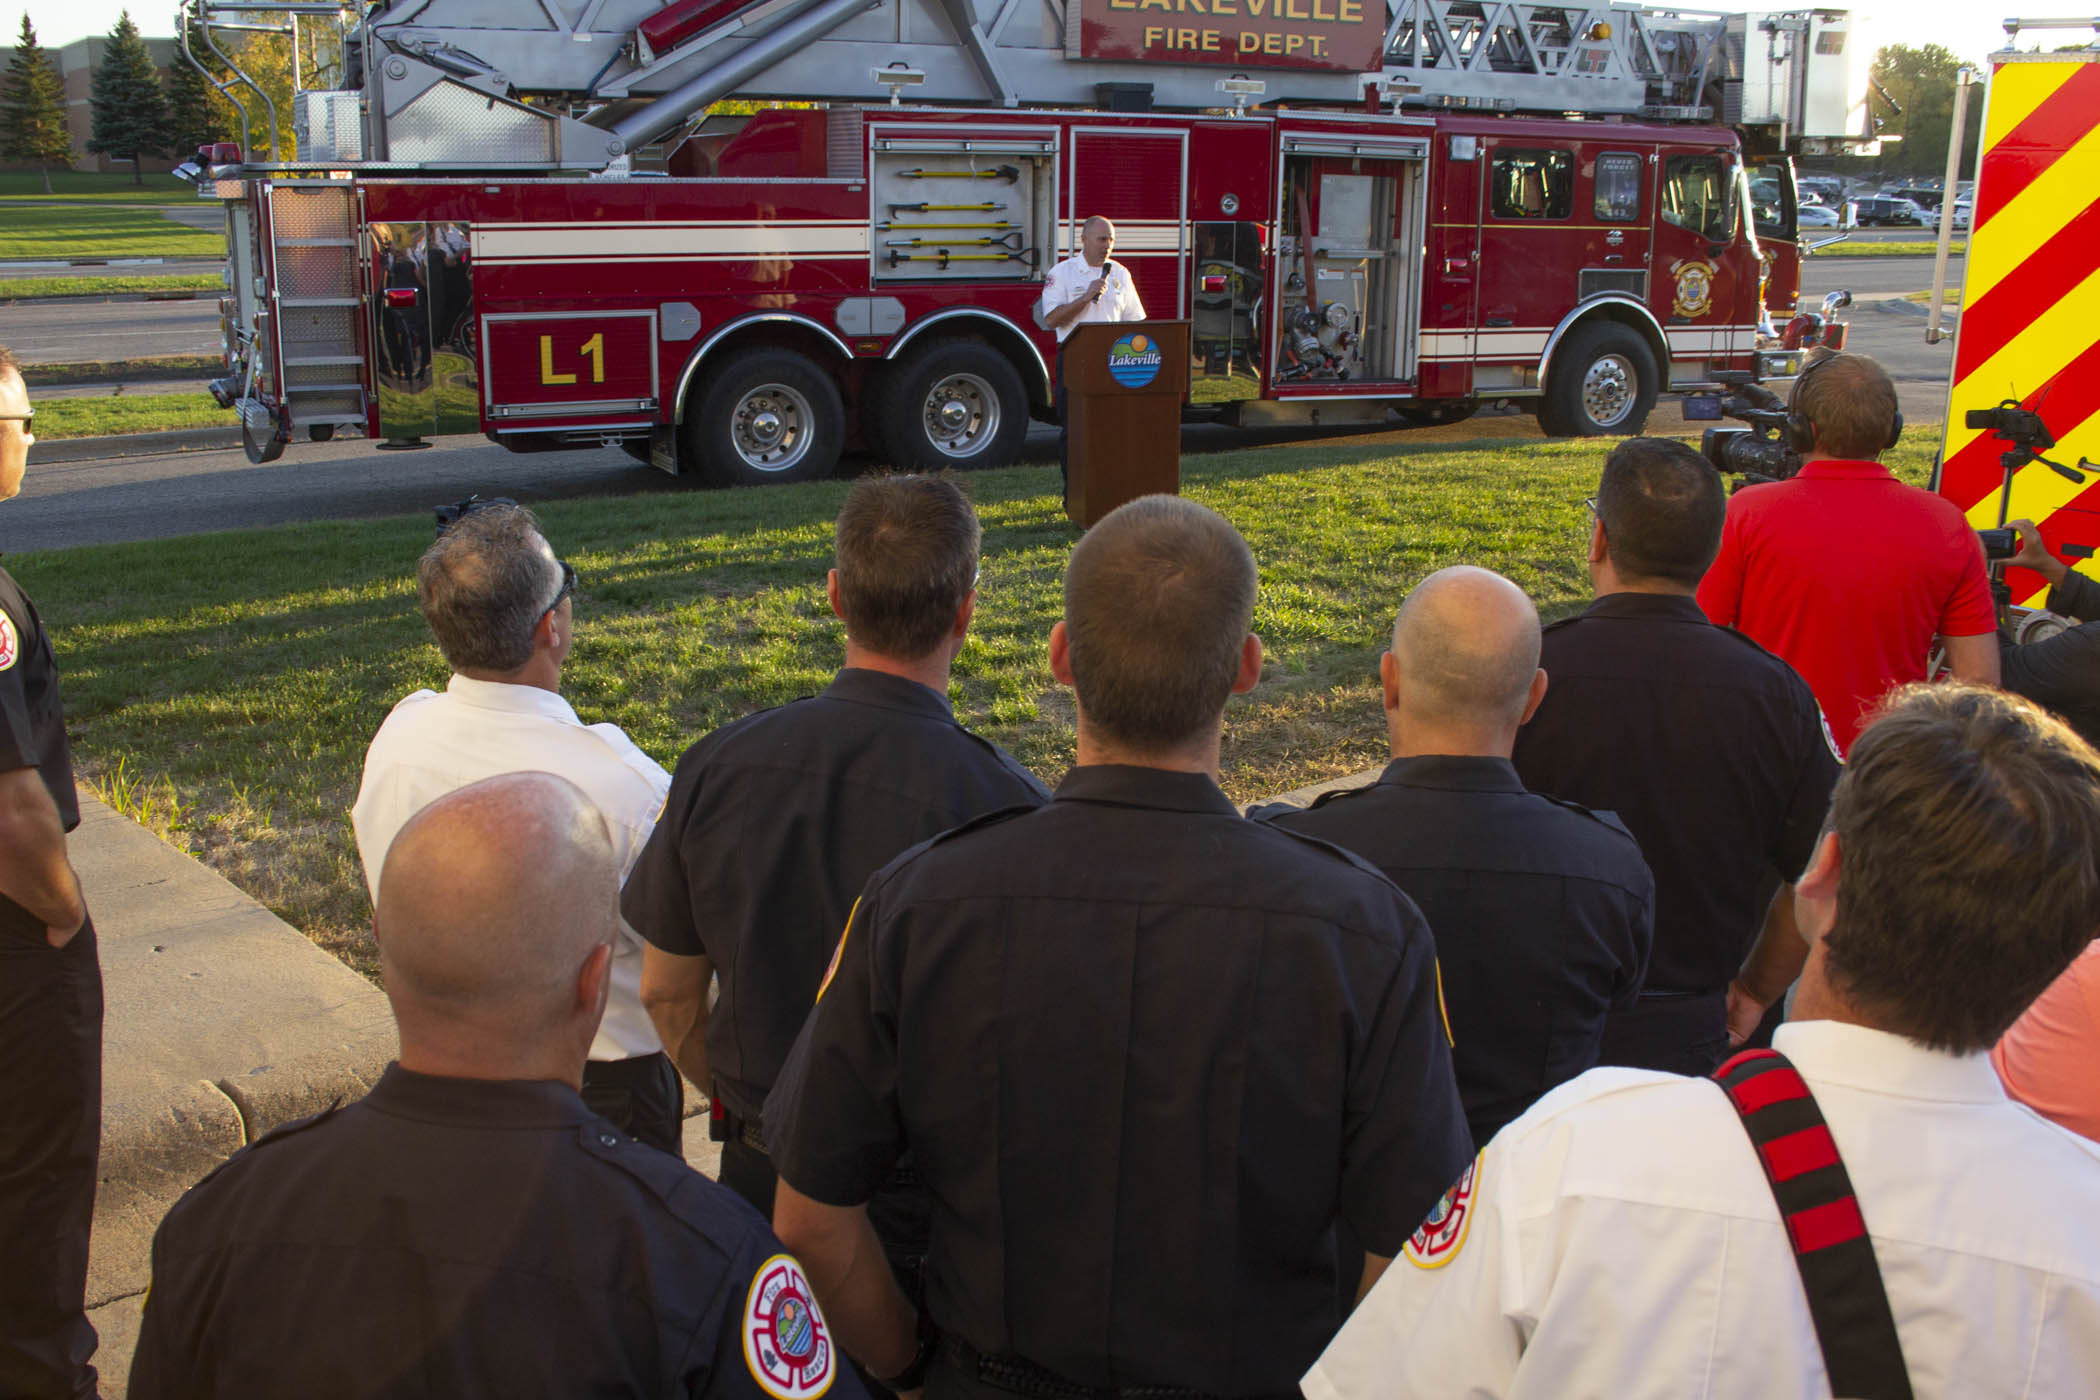 fire chief speaking to crowd